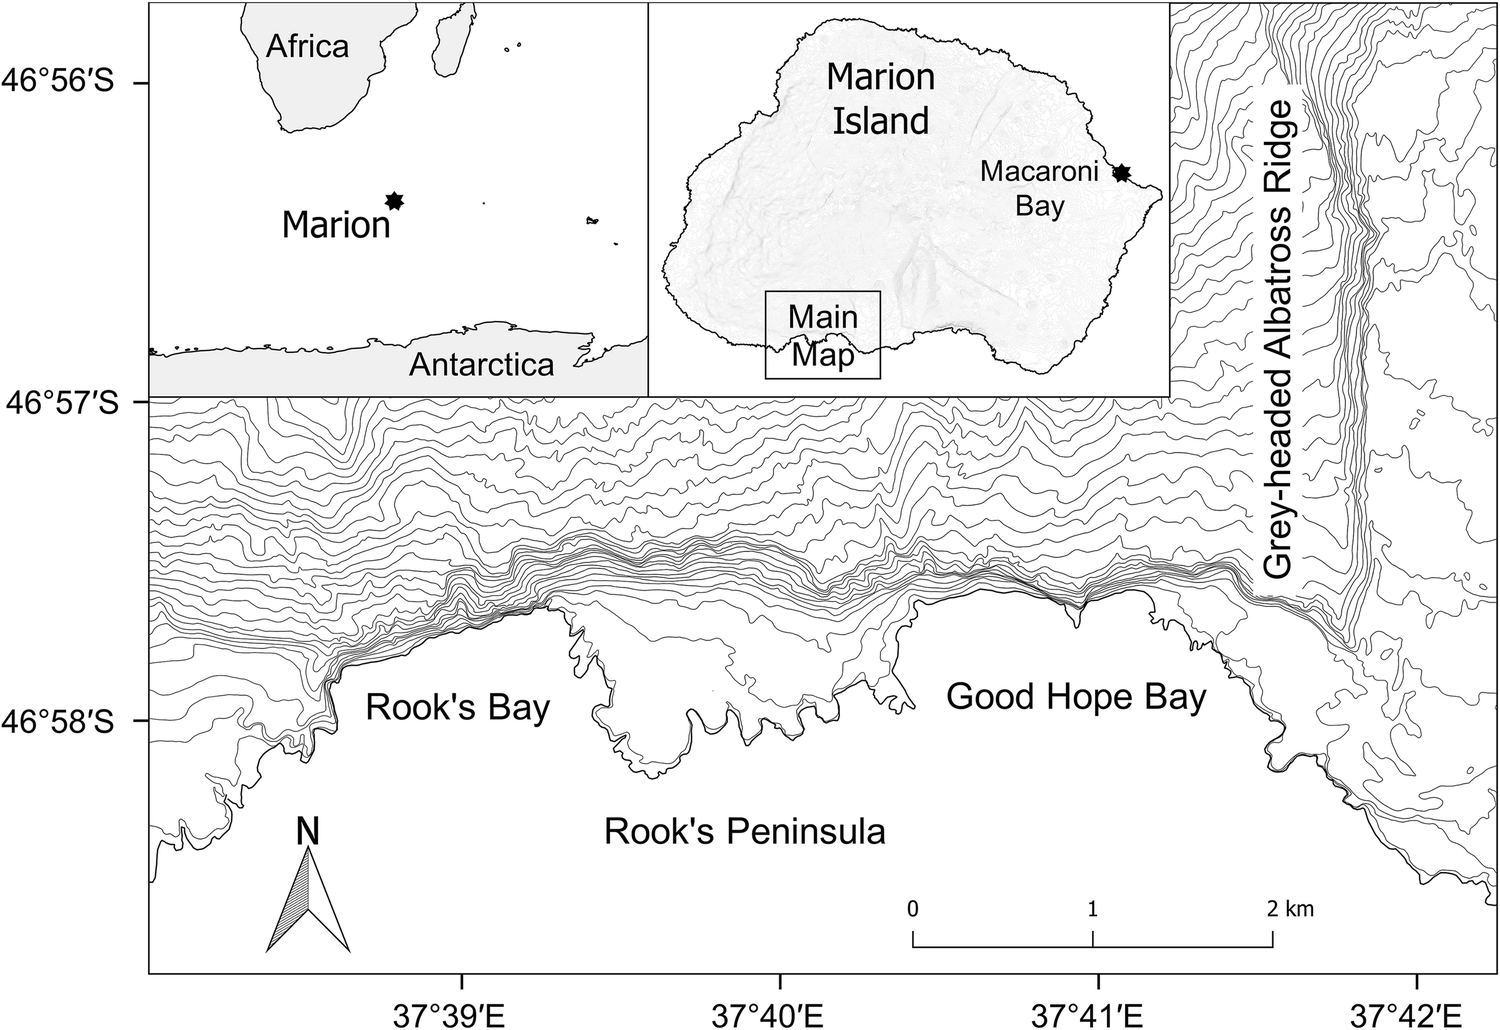 Plumage and bill abnormalities in albatross chicks on Marion